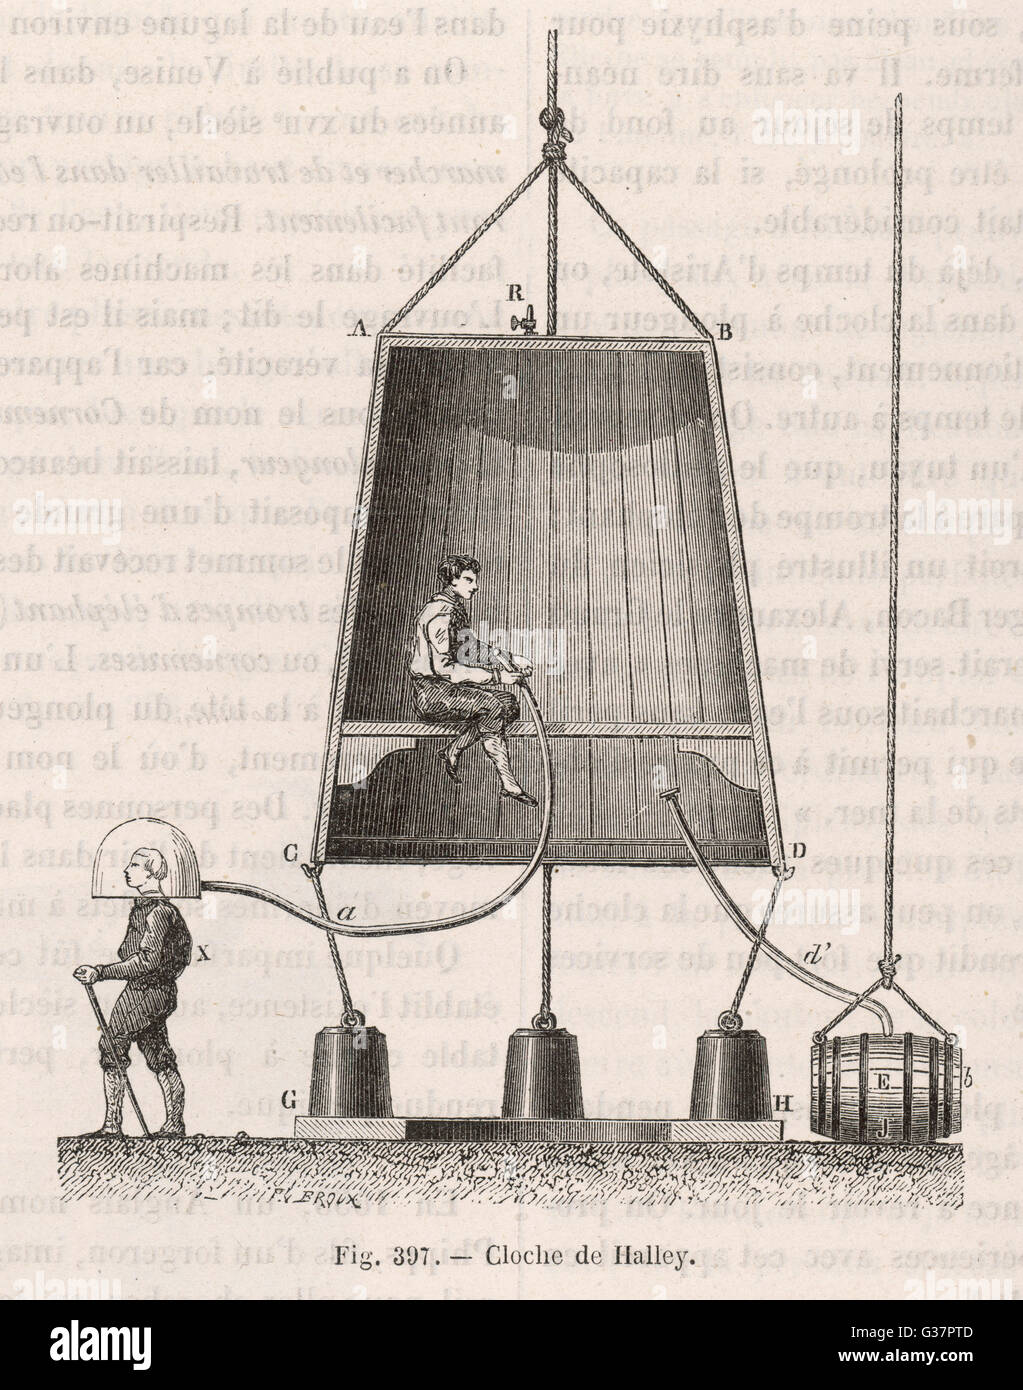 Halley's diving bell         Date: 1690 Stock Photo